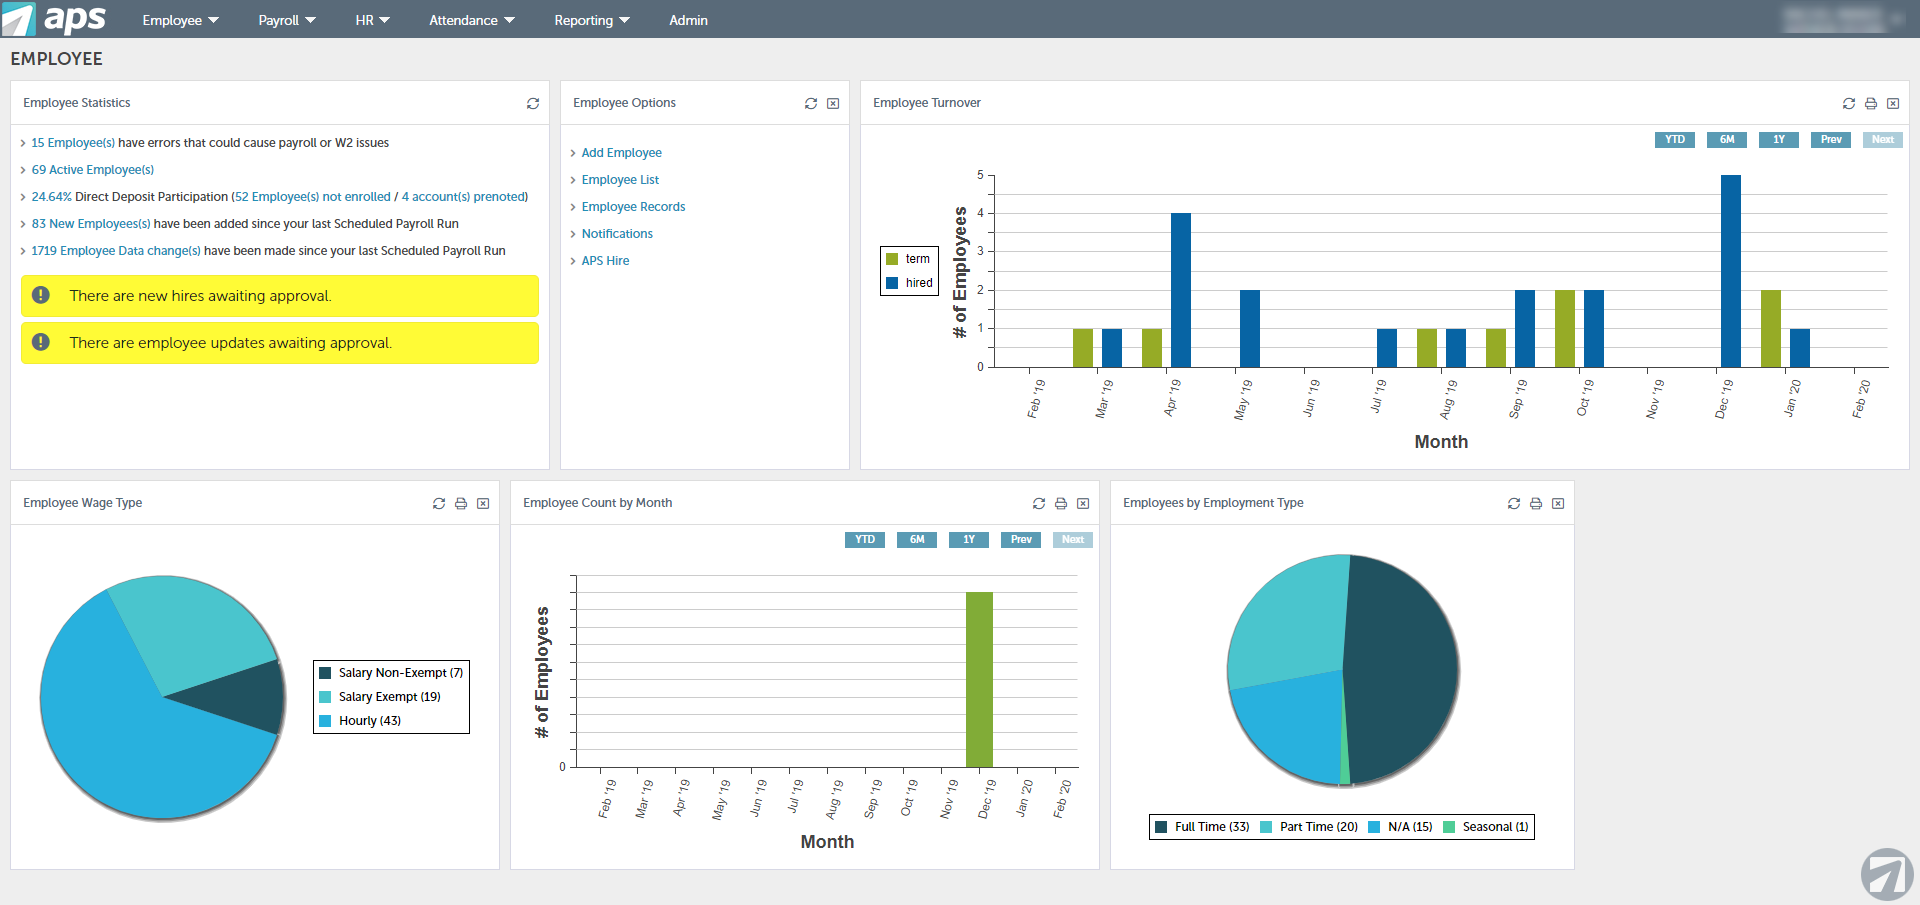 APS - Employee Dashboard